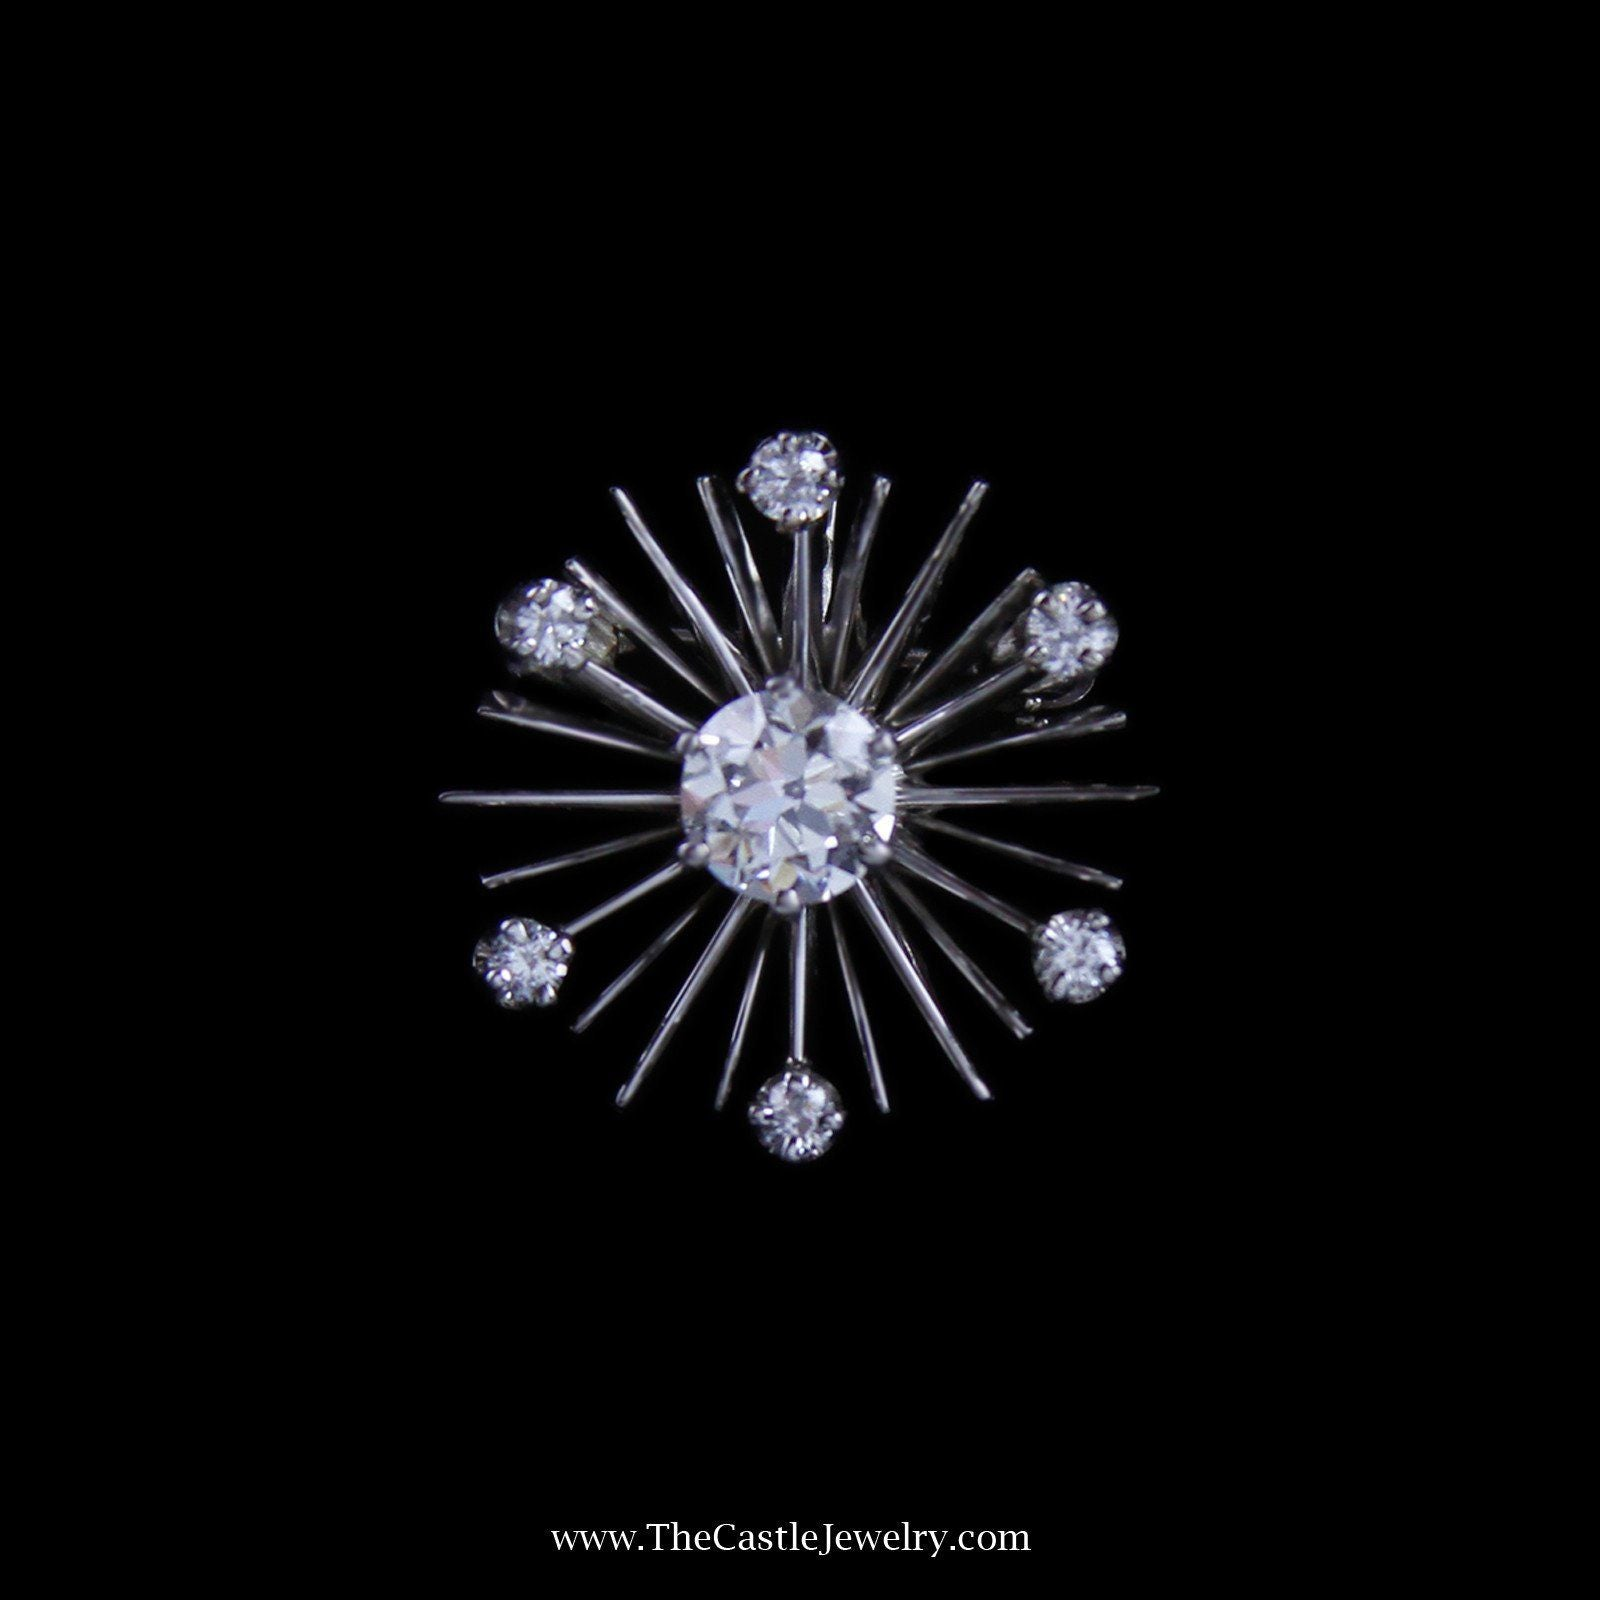 Stunning Diamond Starburst Design Pendant/Pin in 14k White Gold